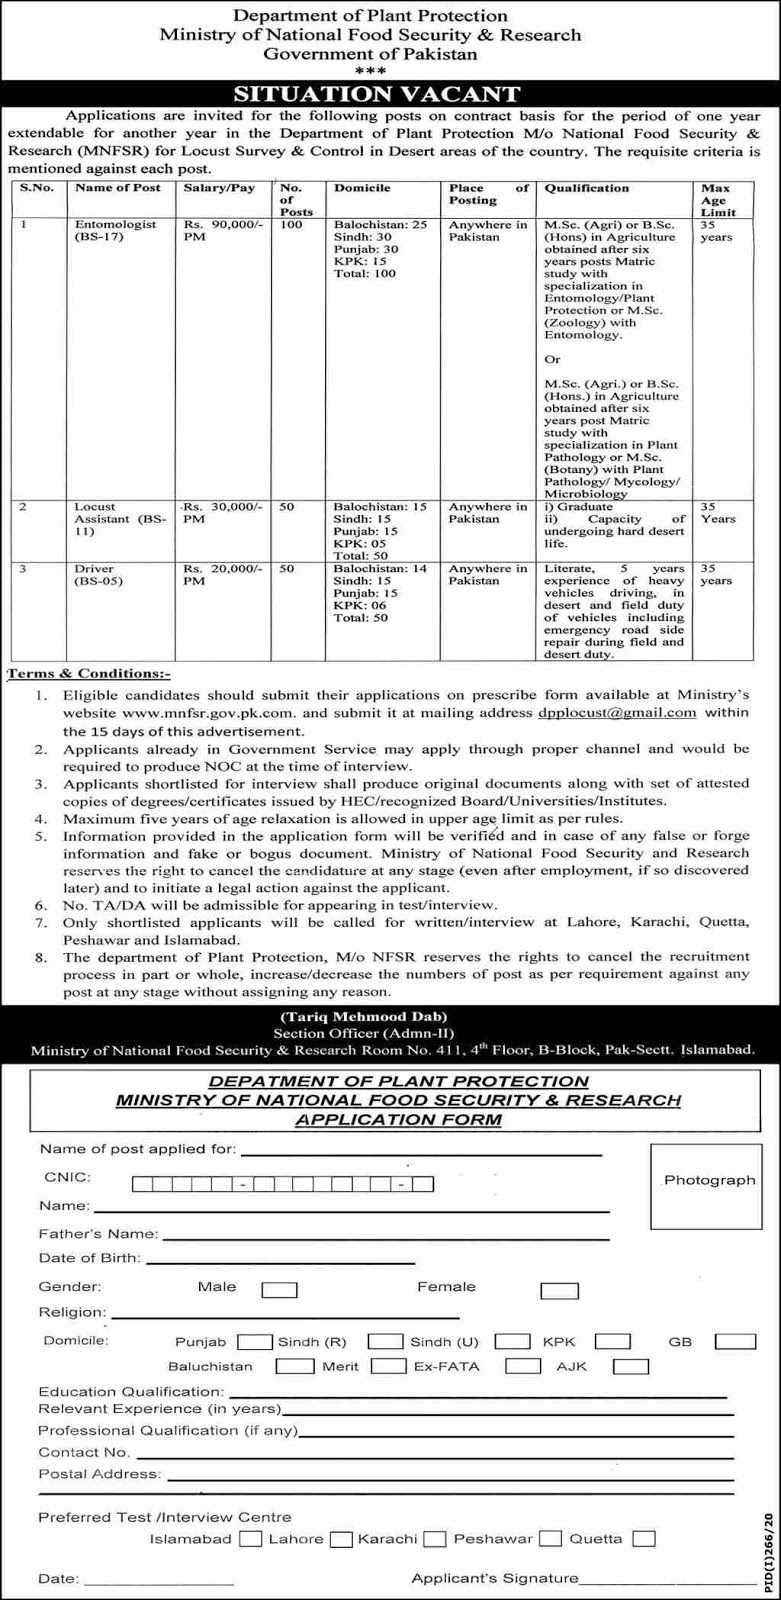 200 Seats in the Department of Plant Protection Jobs 2020 with good Salary Package